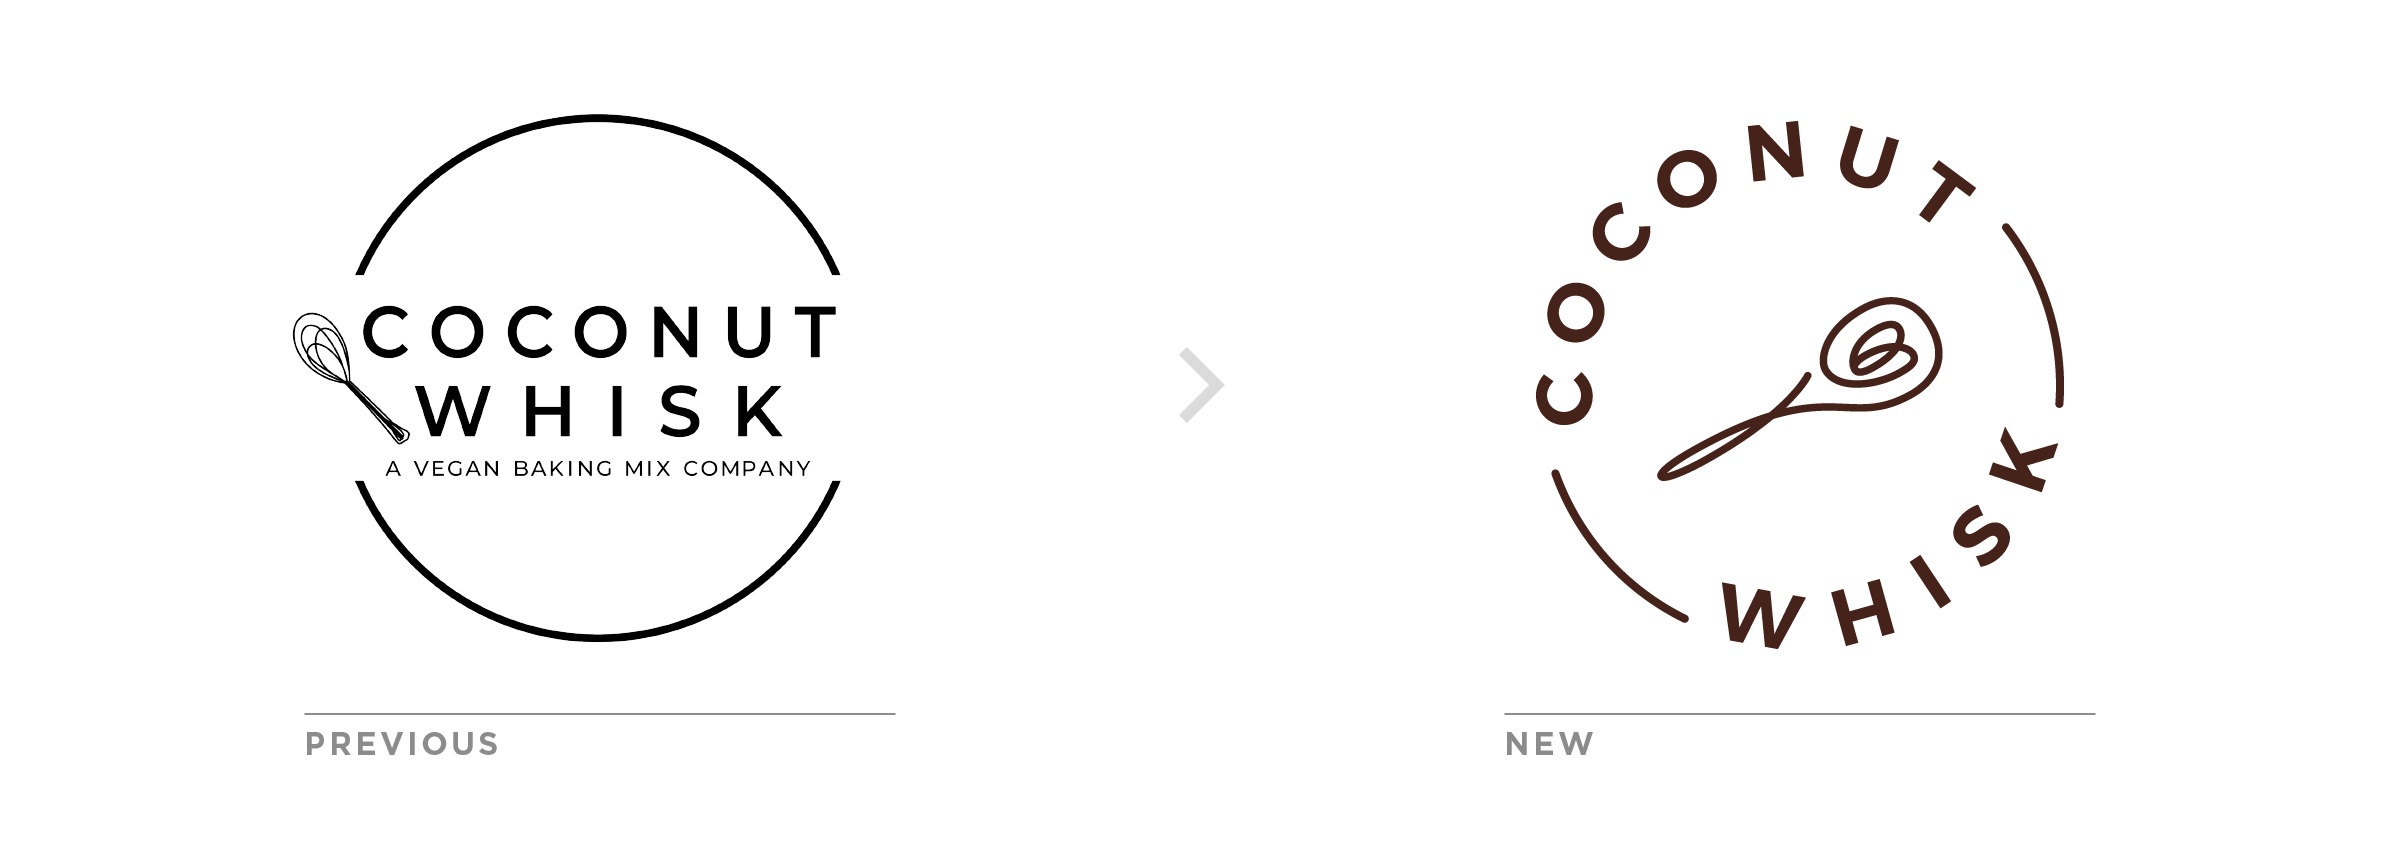 coconut whisk logo redesign